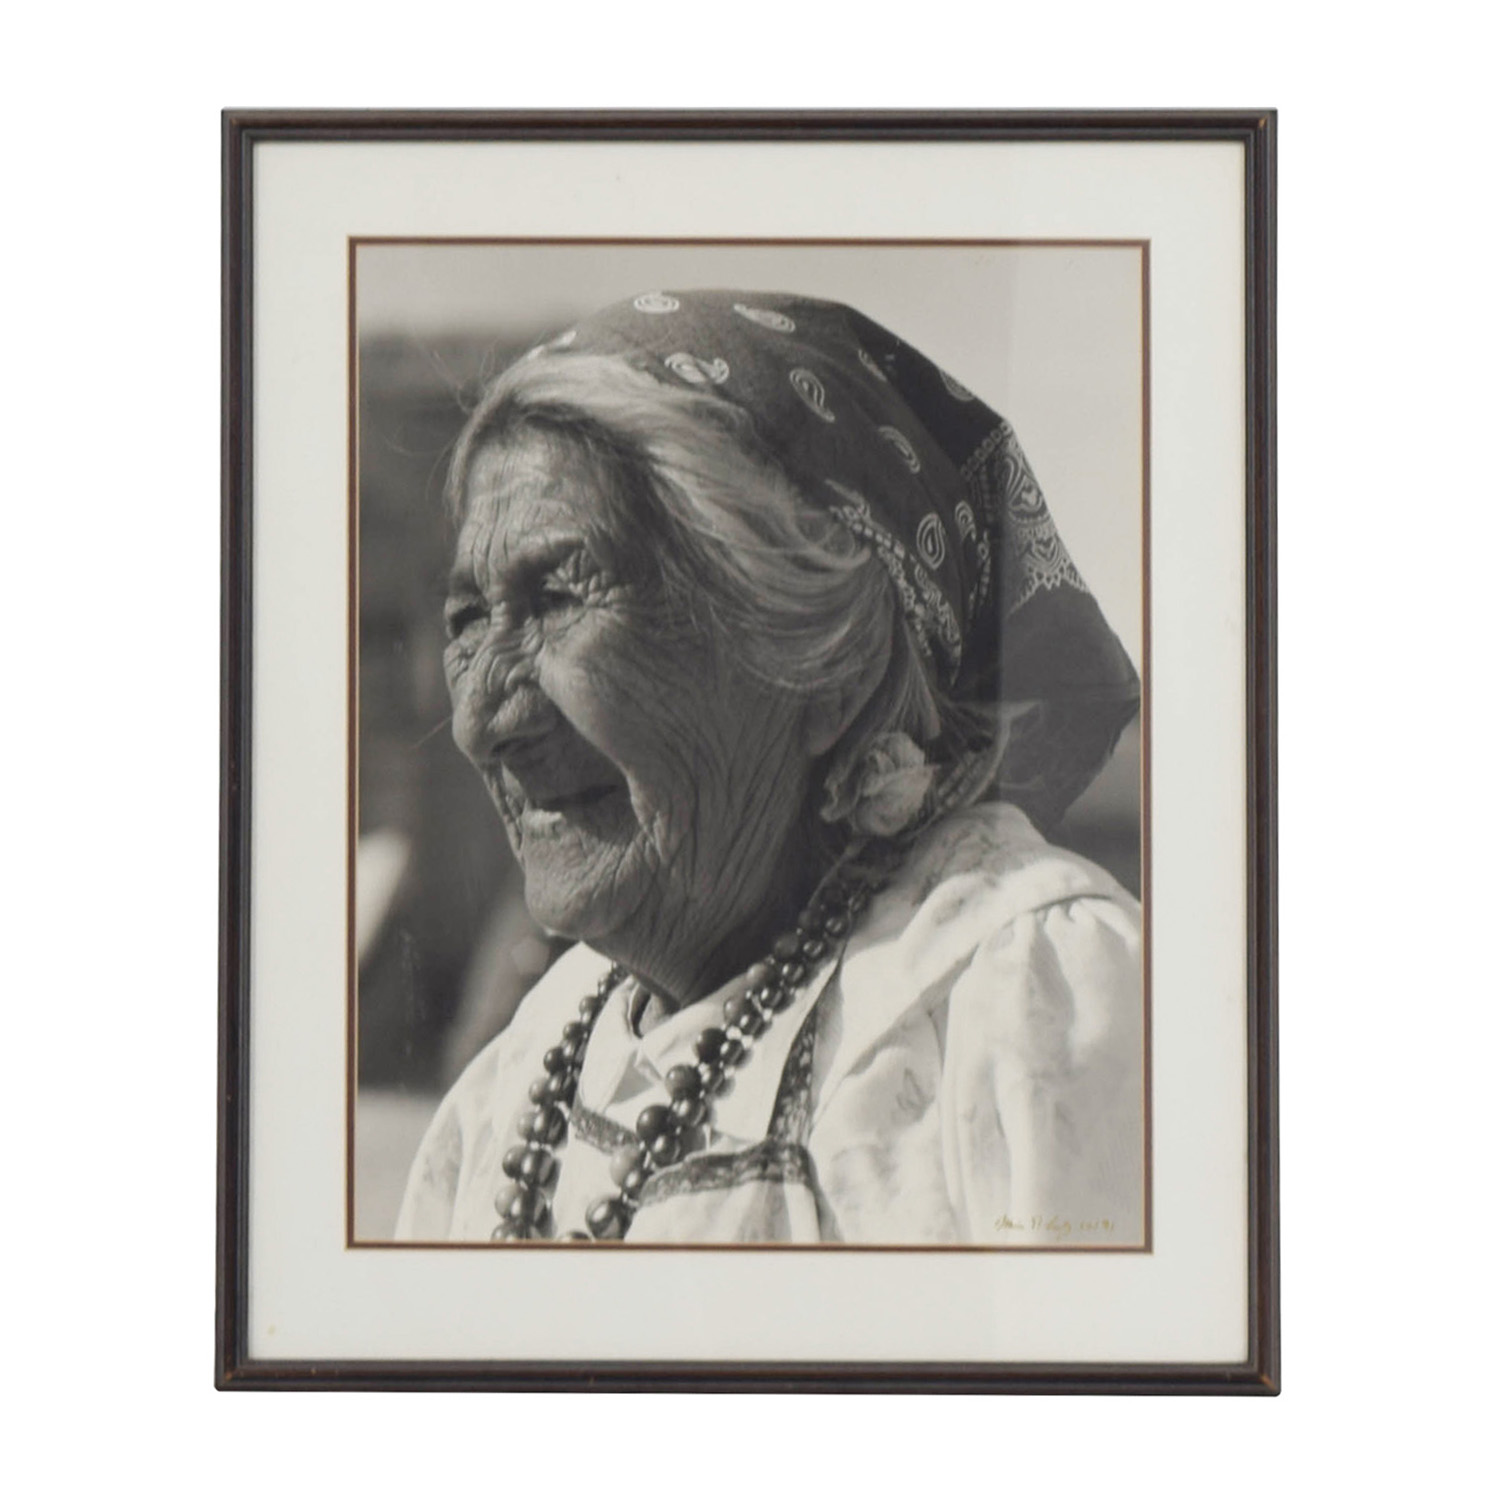 shop Elderly Woman Framed Artwork Decor